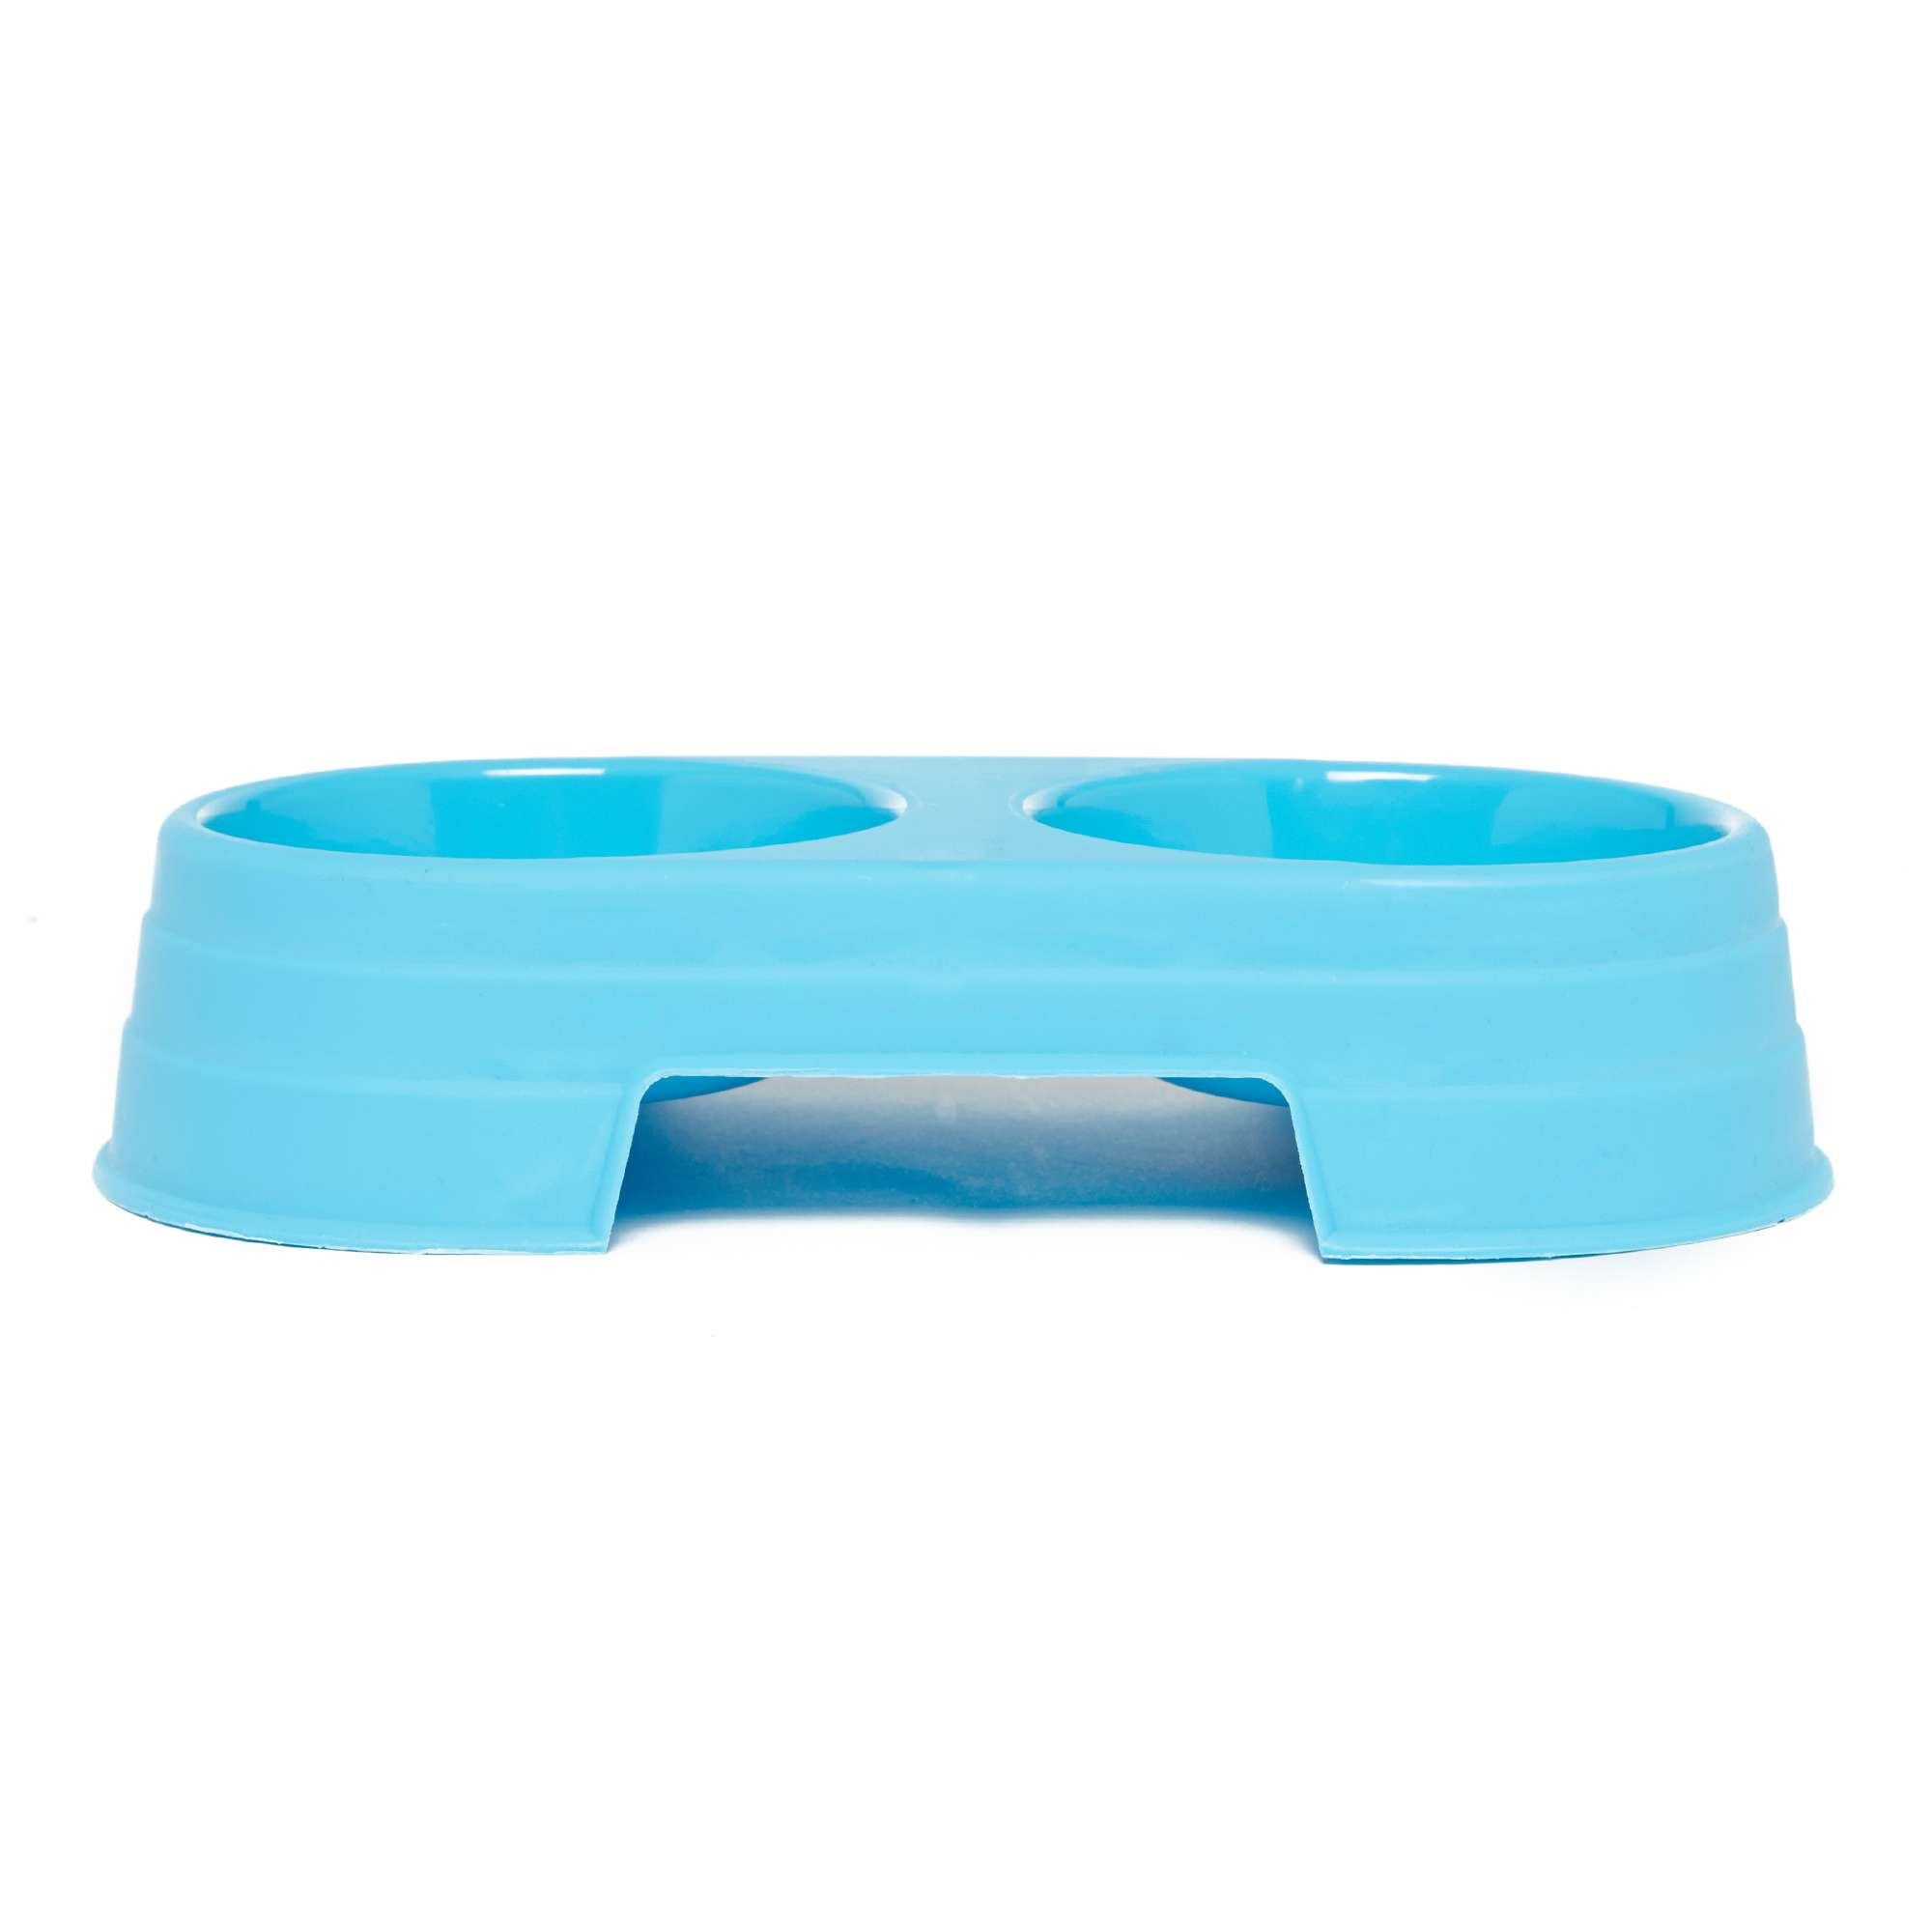 BOYZ TOYS Double Food And Water Bowl